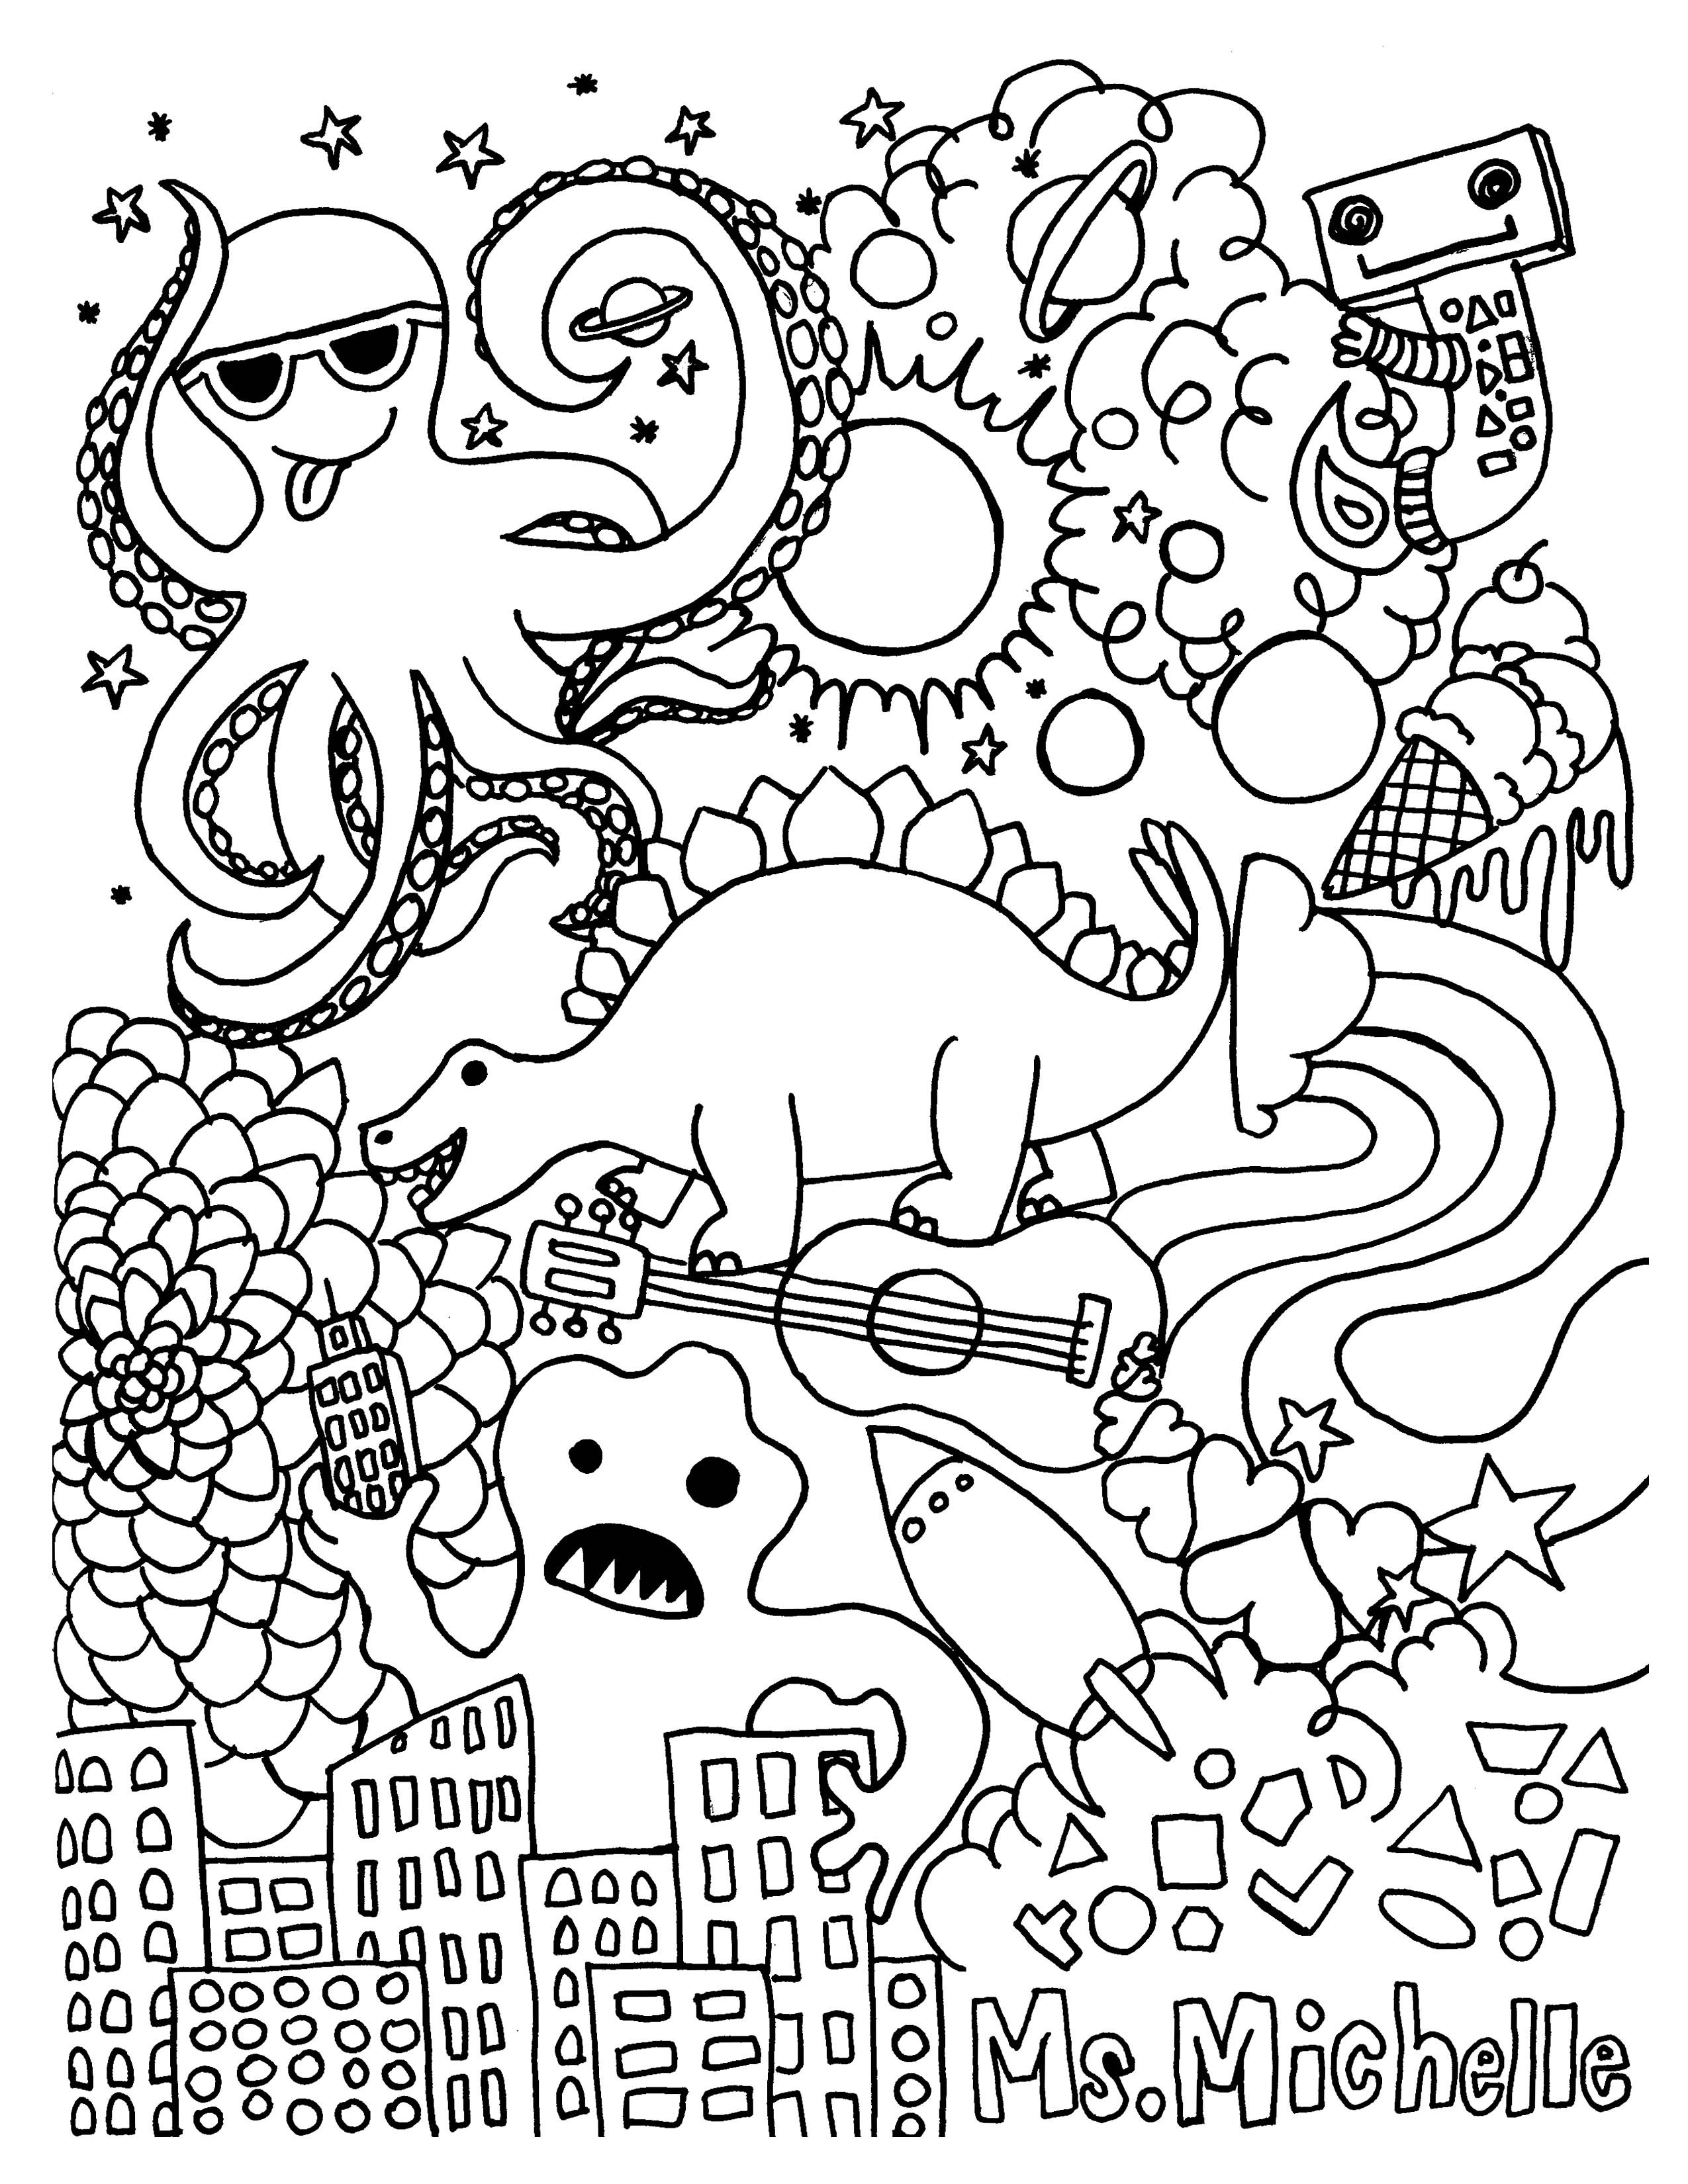 Free Printable Jesus Coloring Pages For Kids | Jesus coloring ... | 3300x2550